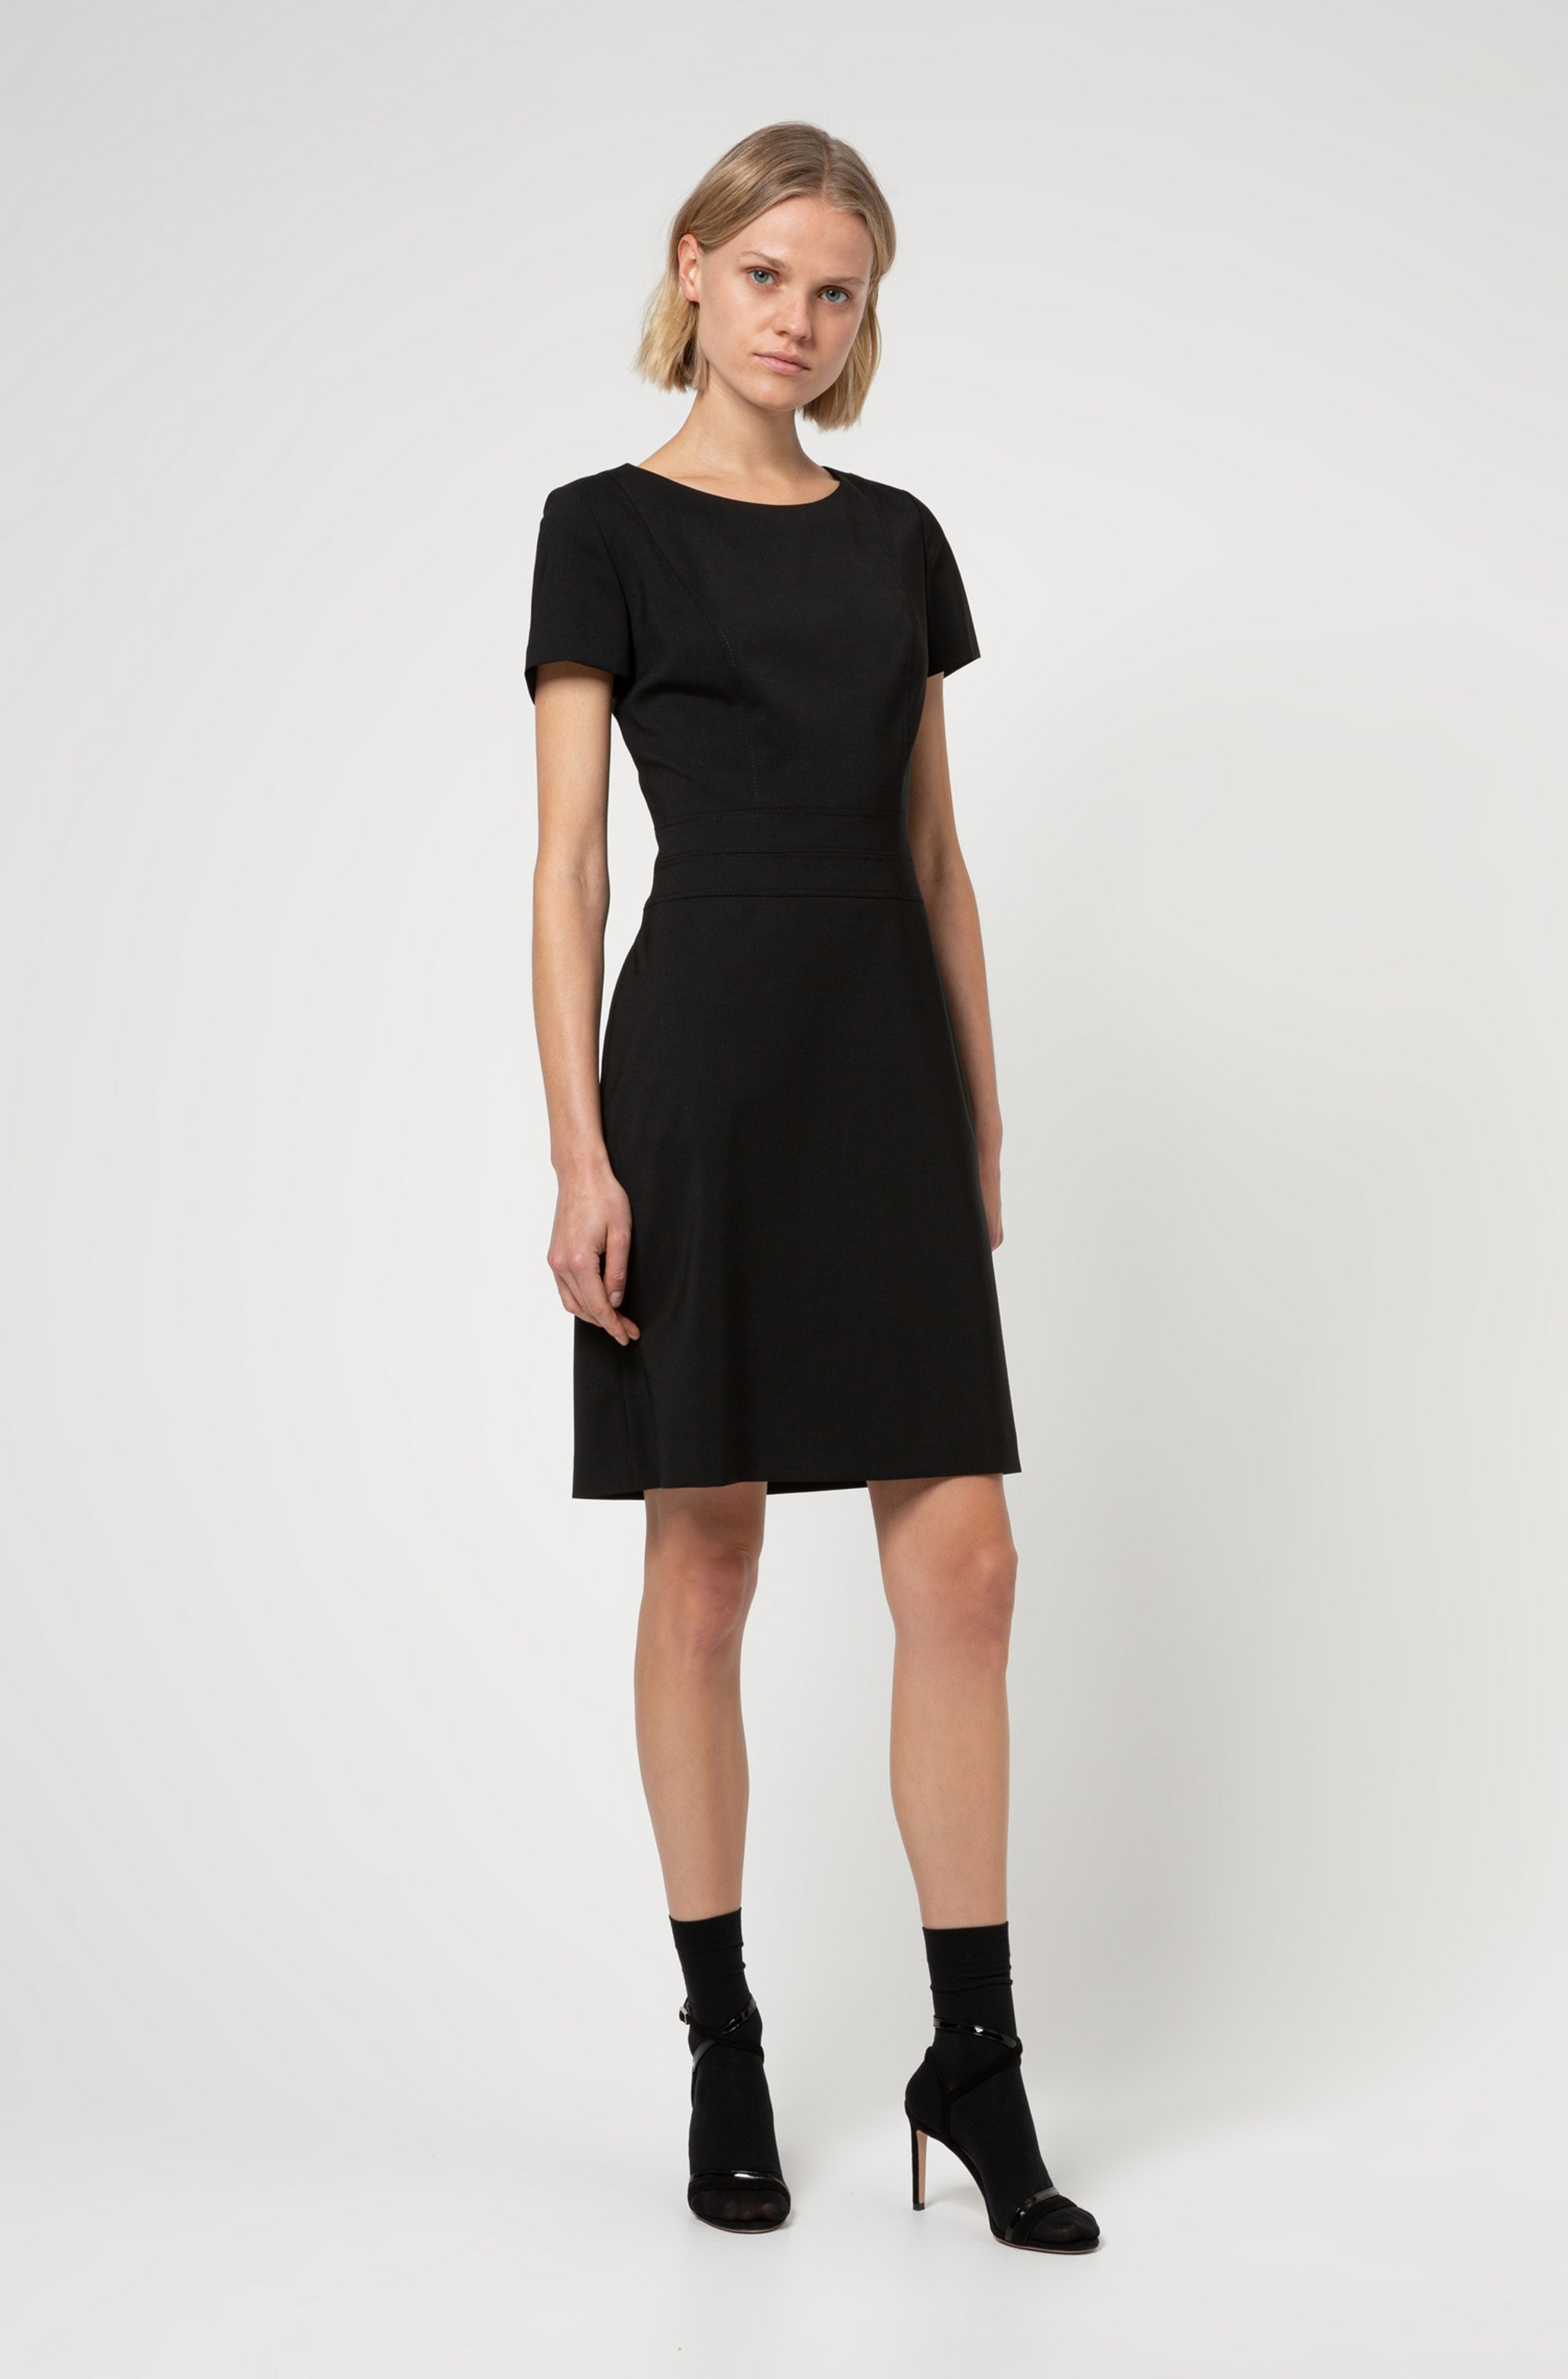 Short-sleeved shift dress in worsted stretch virgin wool